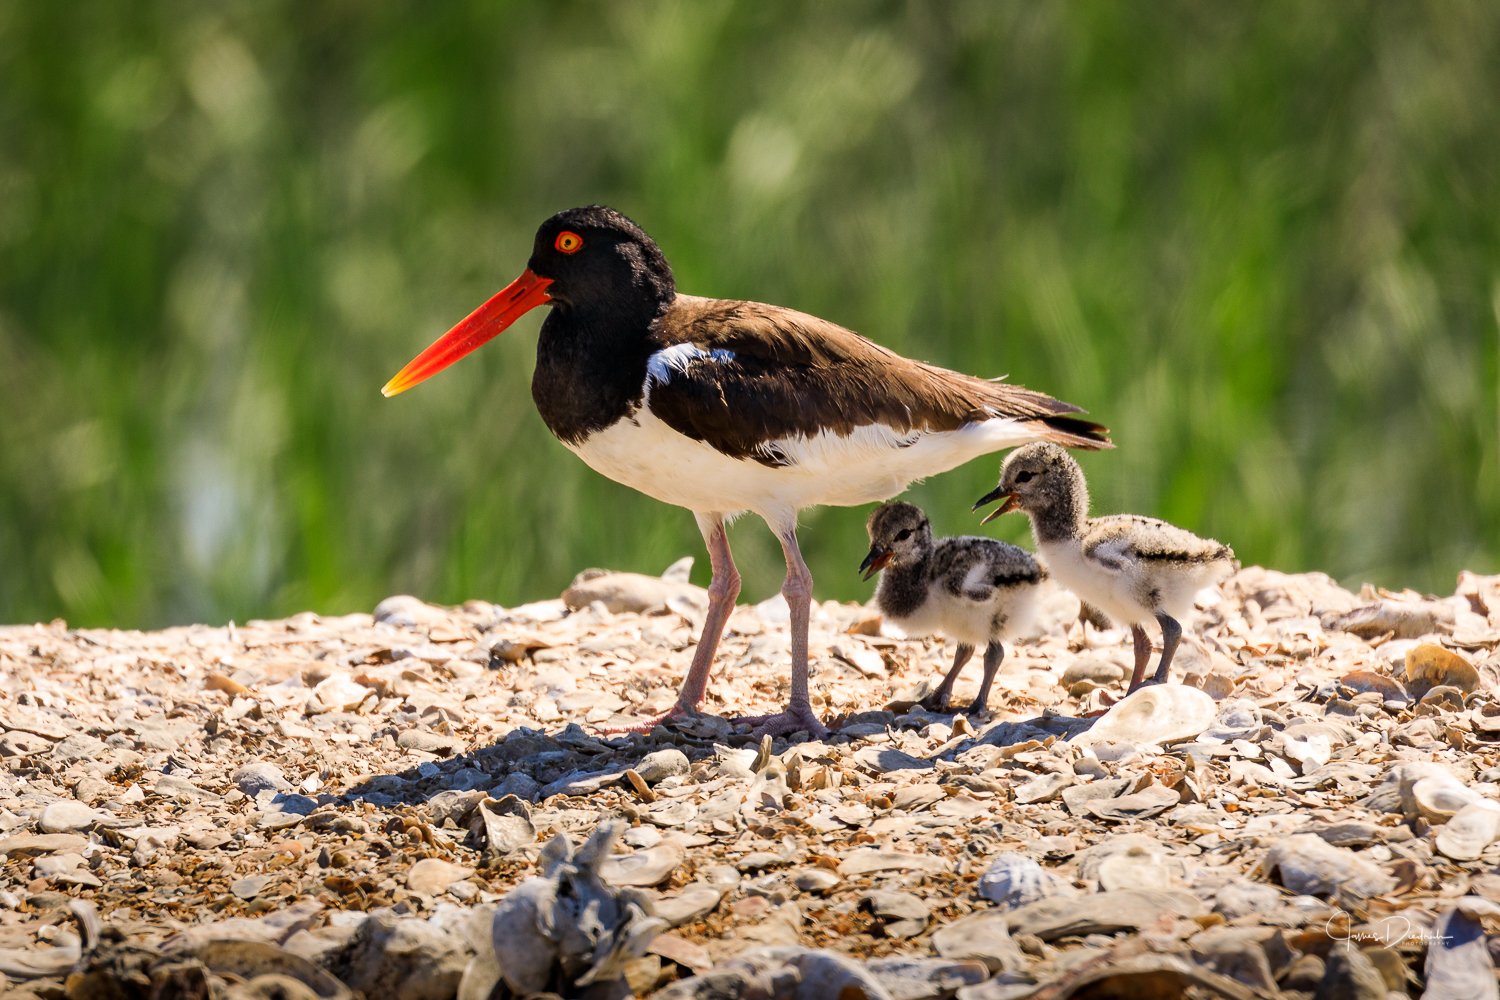 Here is the same Oystercatcher but this time with it's 2 chicks. The chicks are 2 days old.